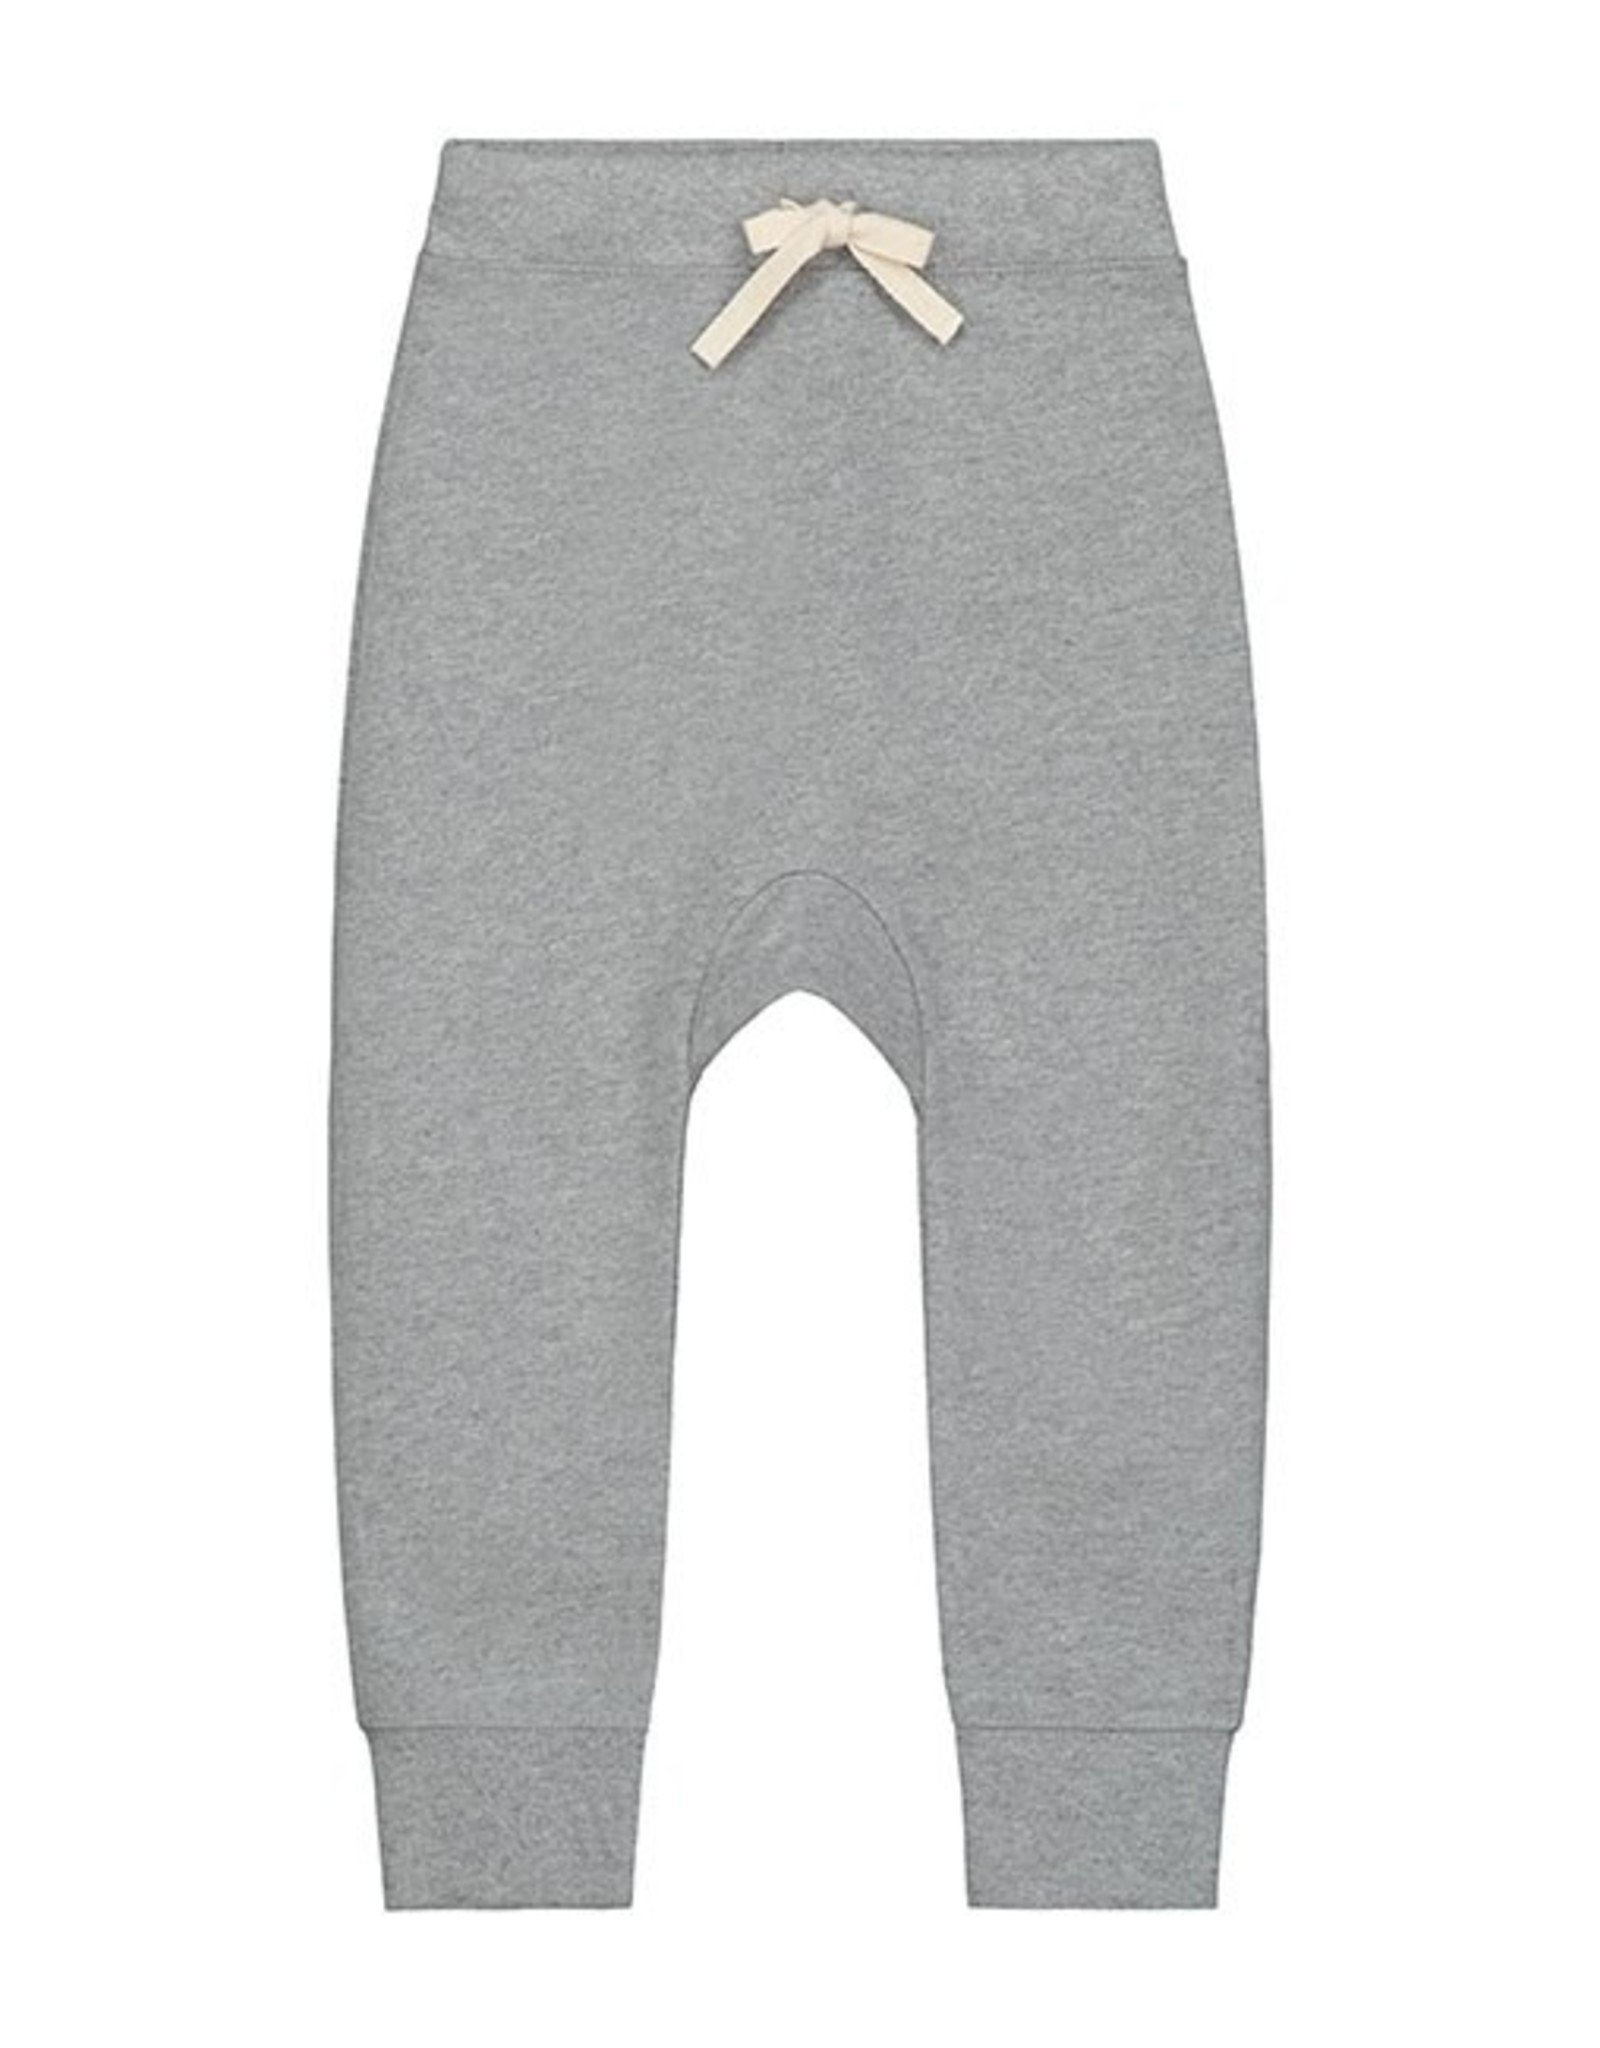 Gray Label Baggy pants